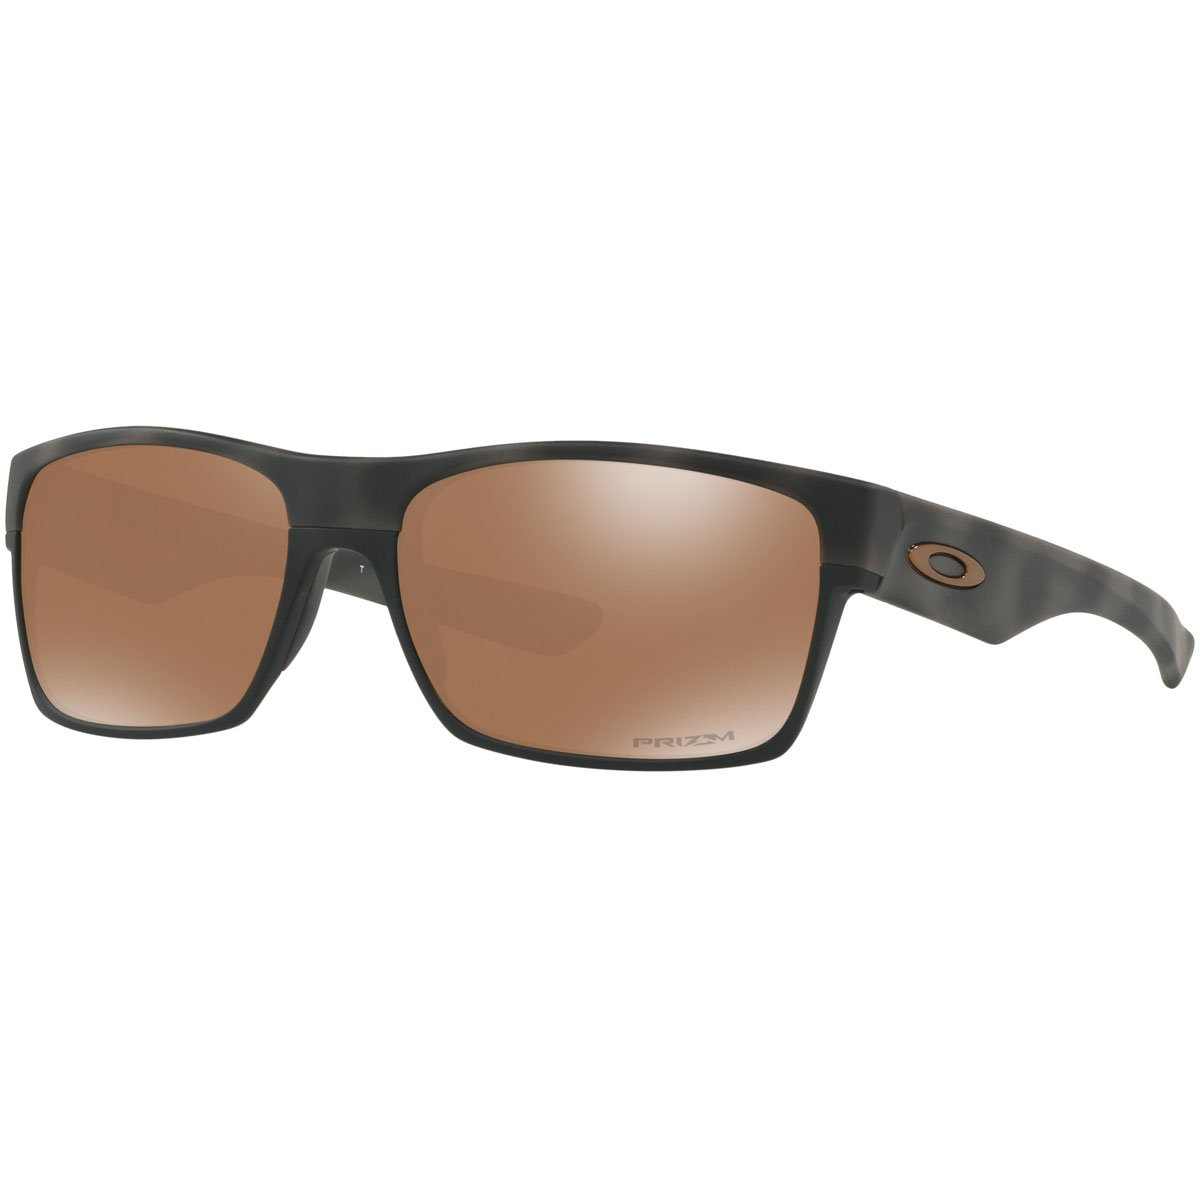 Oakley Mens Twoface Sunglasses, Olive Camo/Przm Tungsten,OS